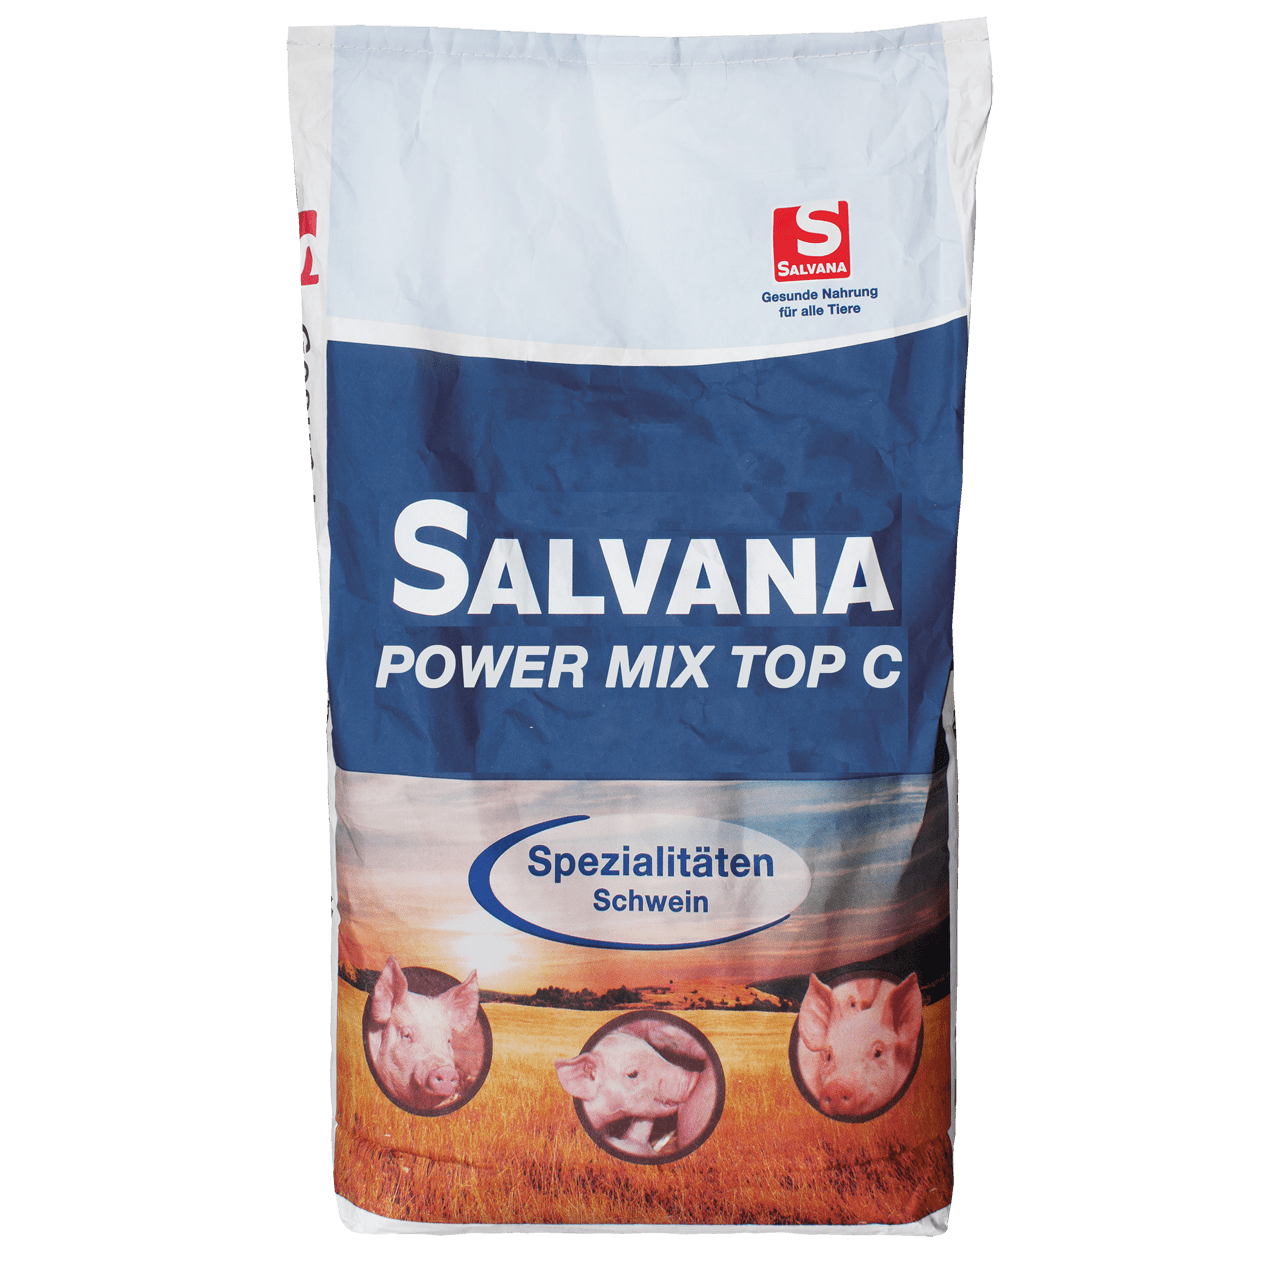 SALVANA POWER MIX TOP C